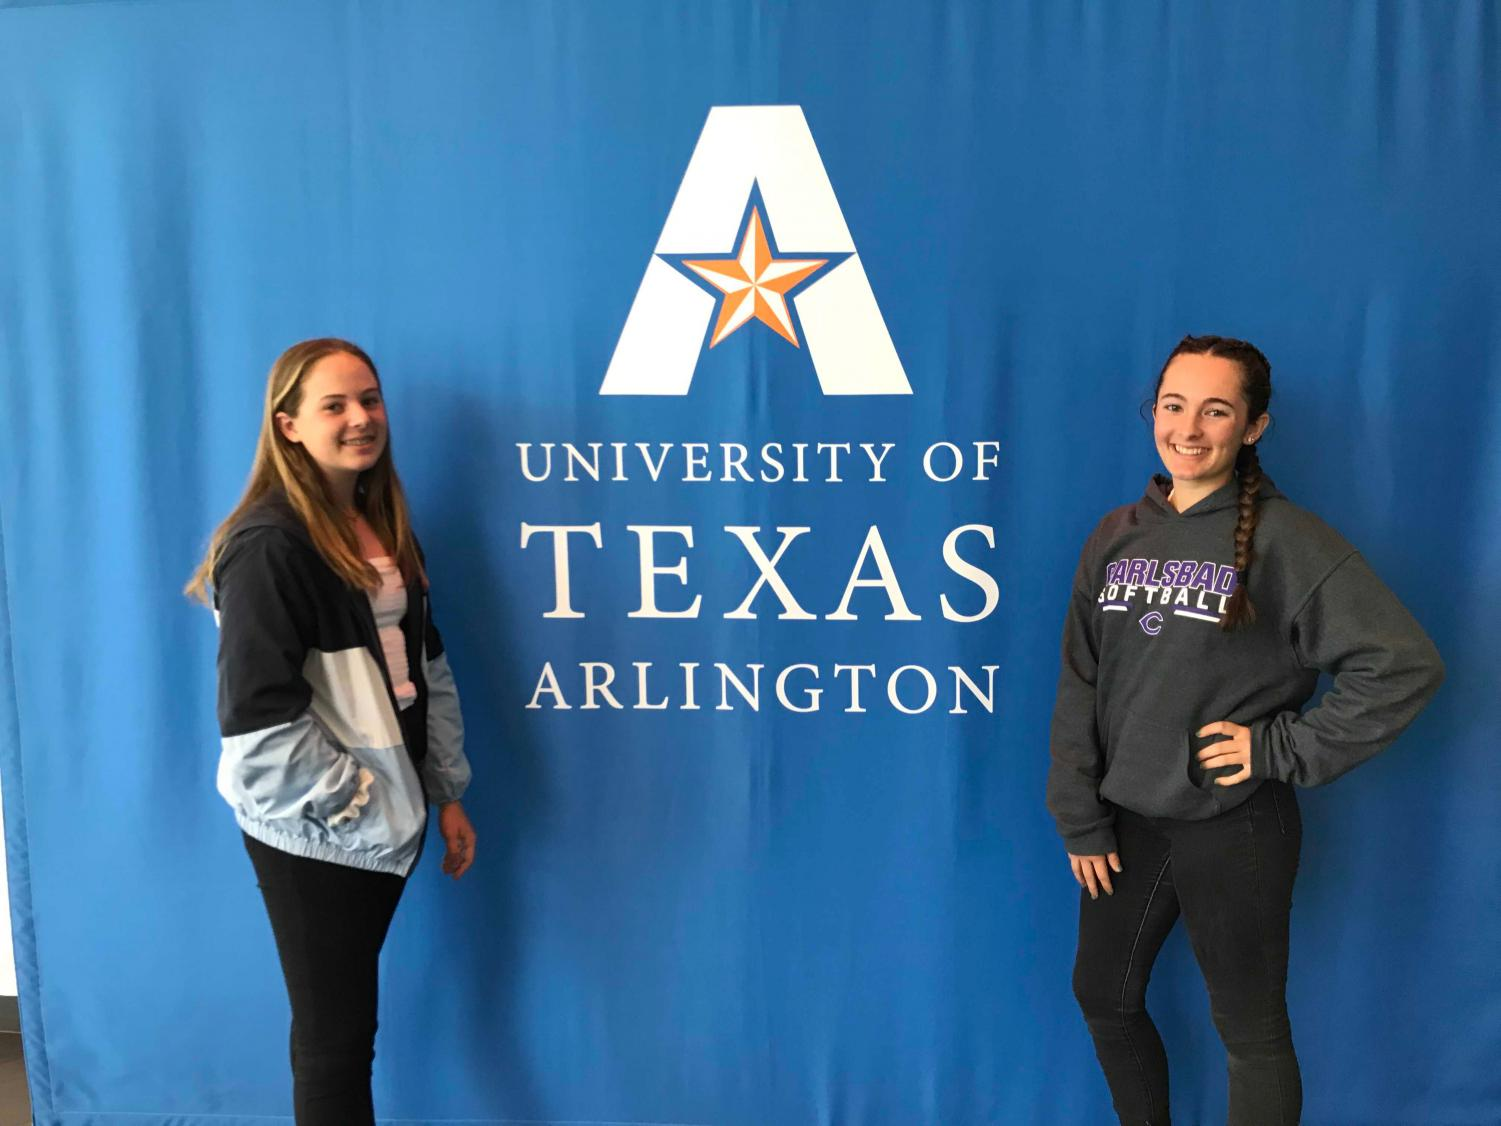 Junior+Megan+Wilson+traveled+to+Texas+with+her+sister+to+tour+colleges.